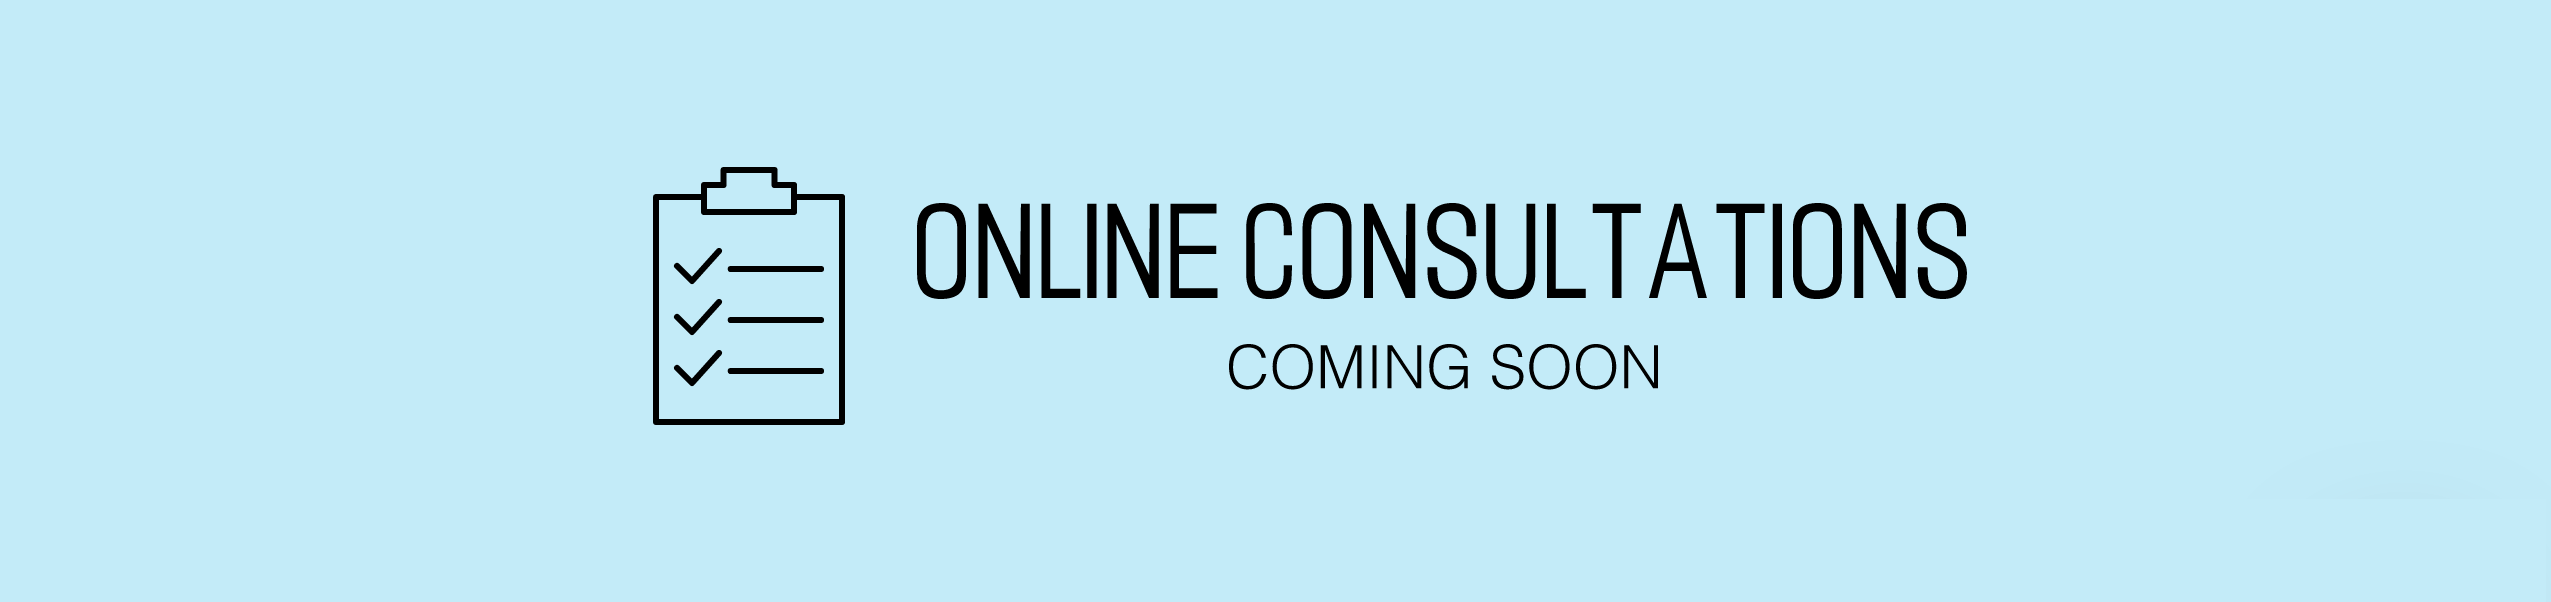 Online Consultations Coming soon